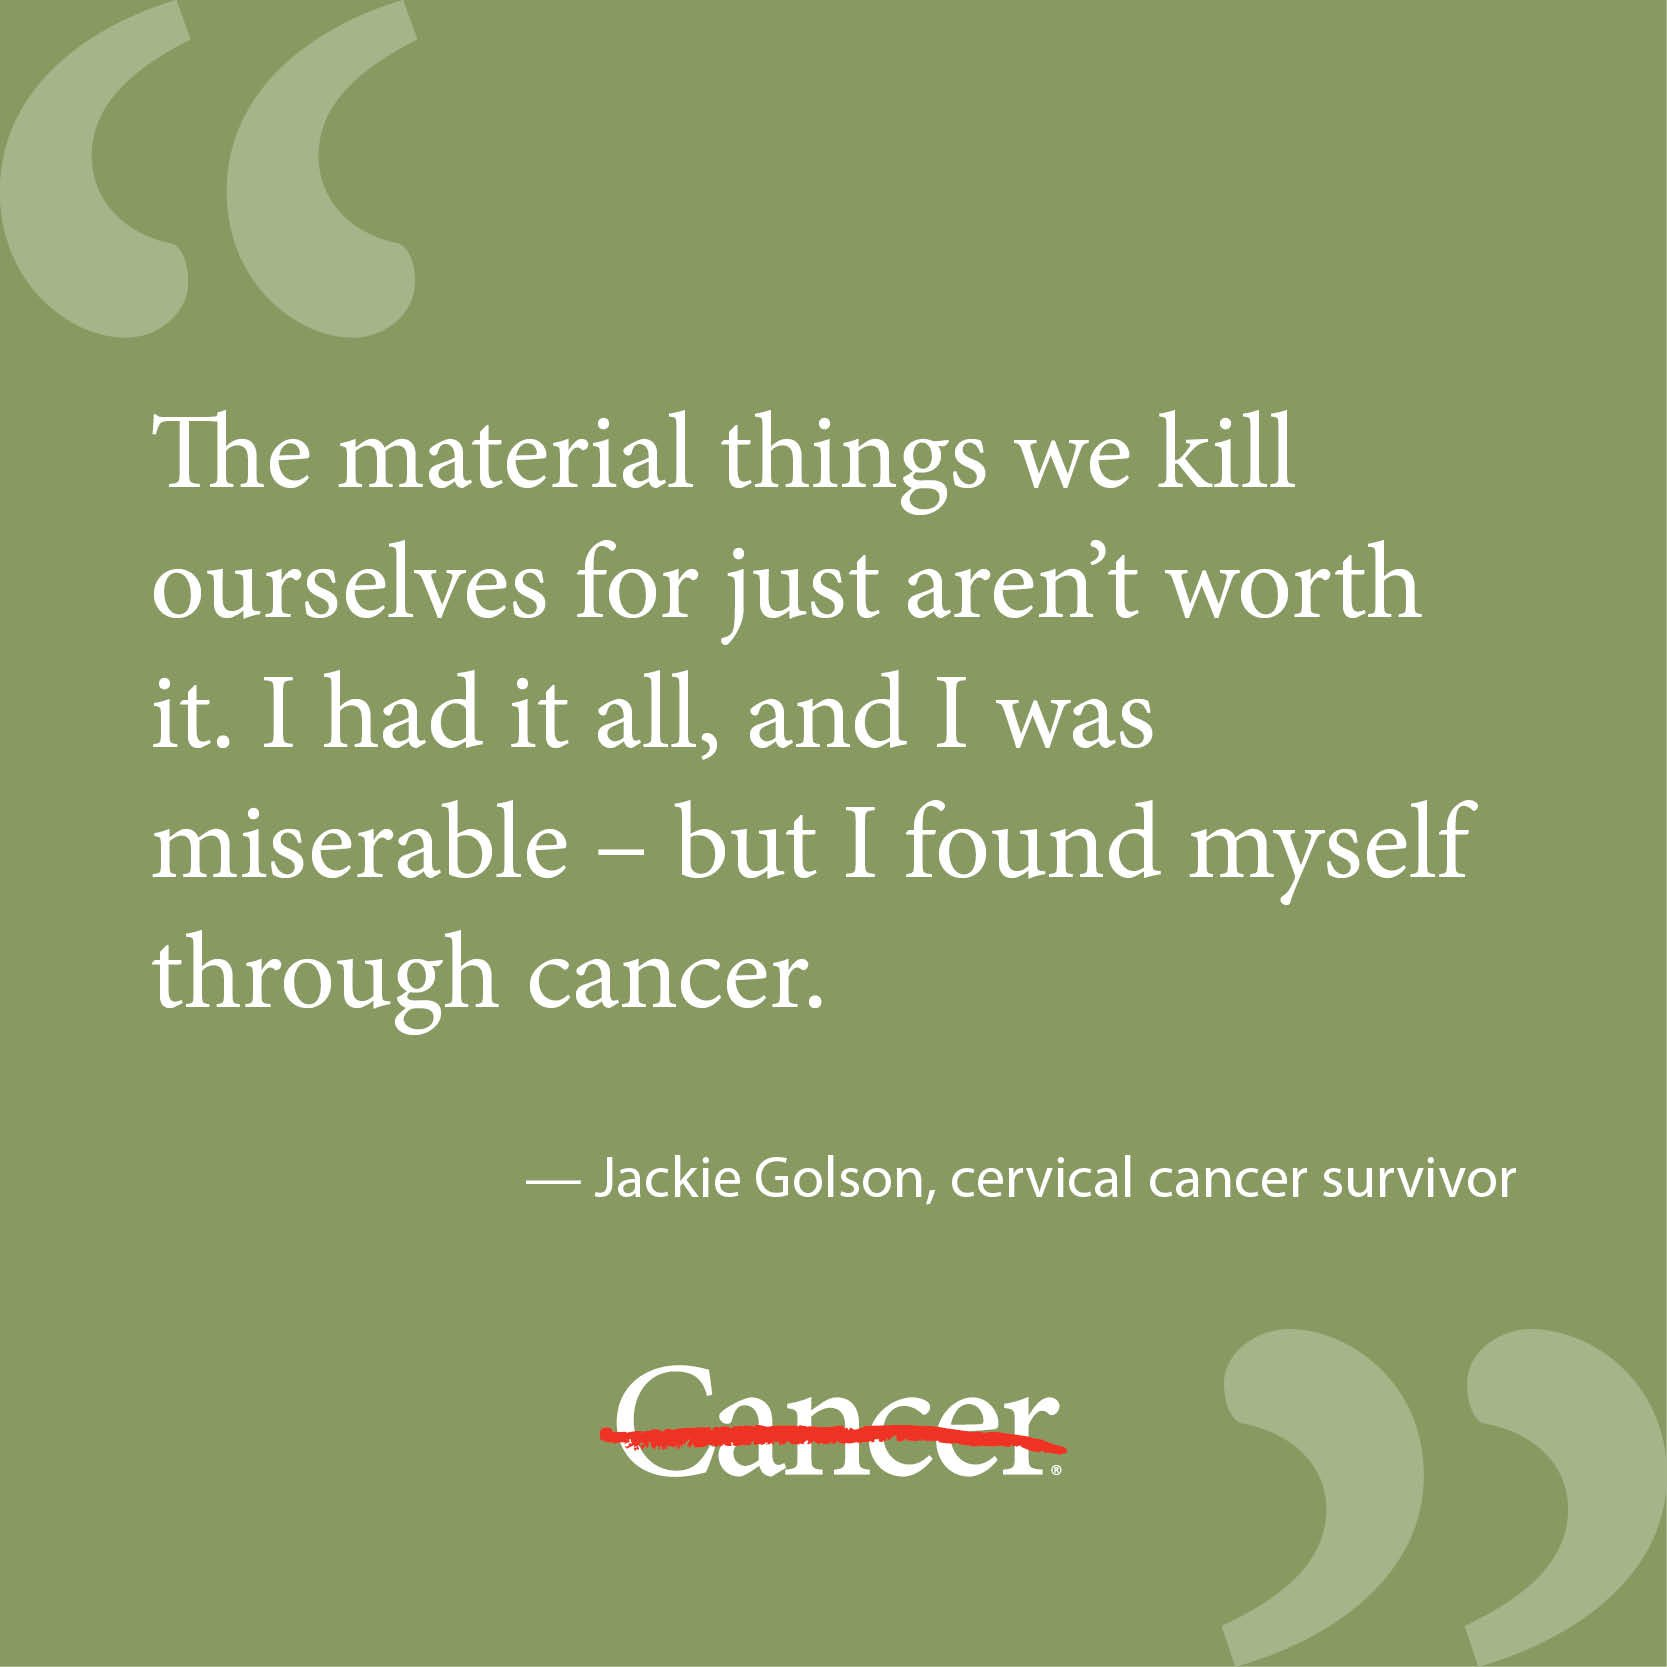 Inspirational Quotes For Cancer Awareness: Funny Quotes About Cervical Cancer. QuotesGram